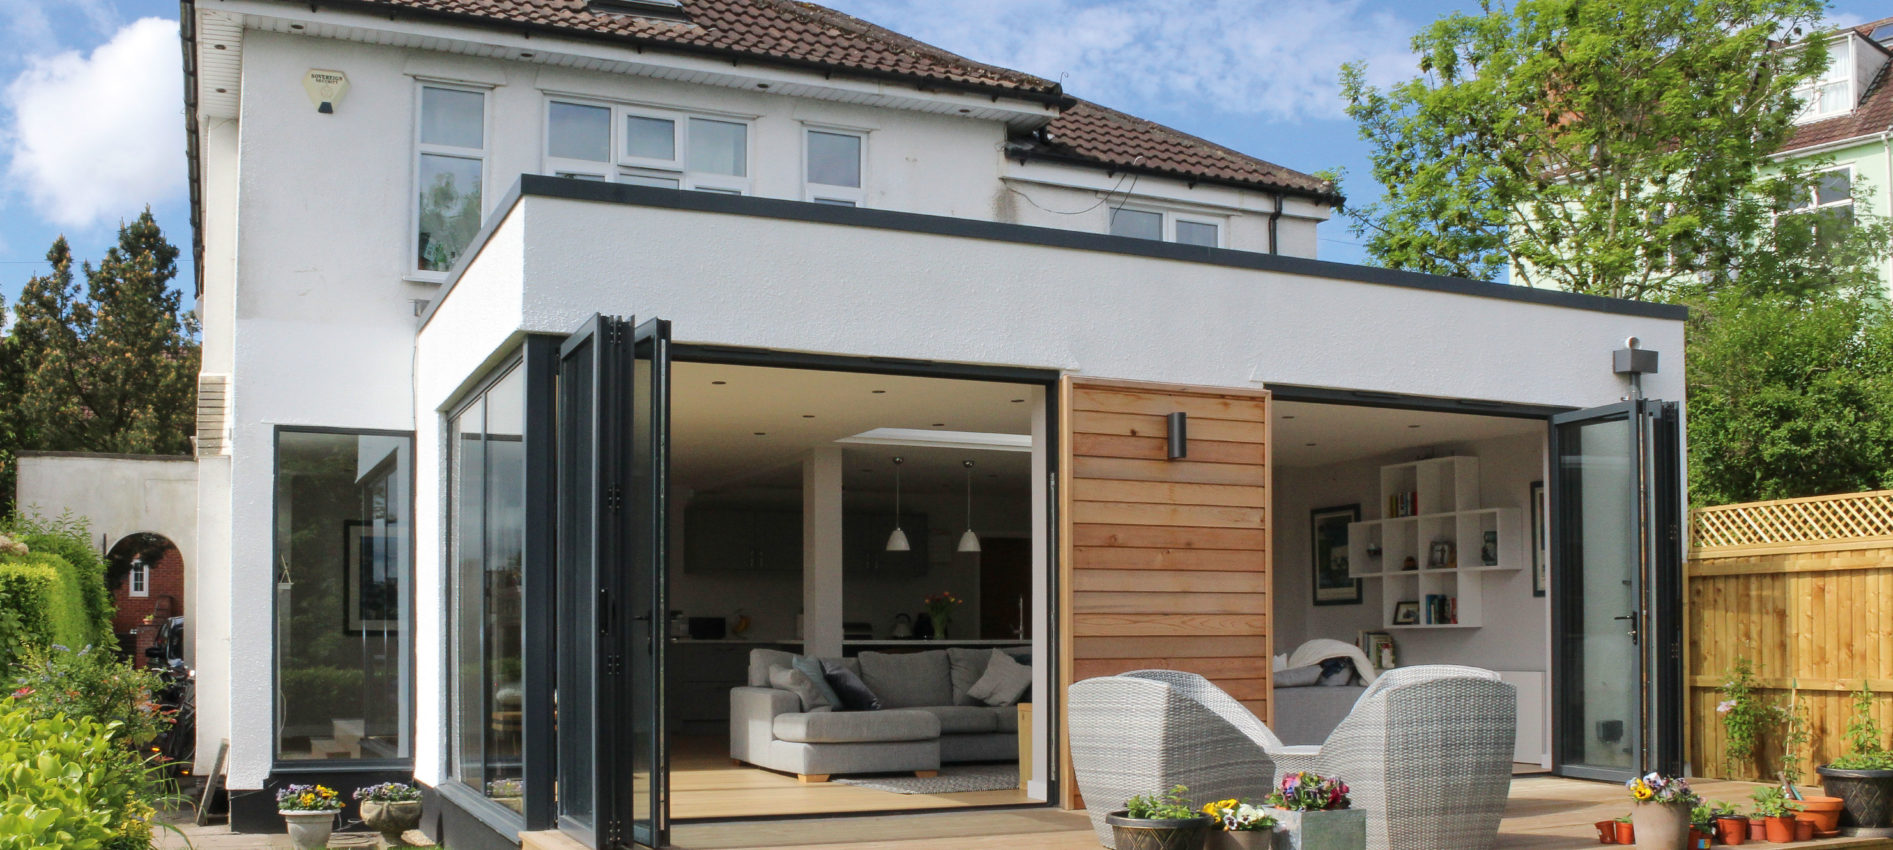 Modern extension from garden showing decking and sliding doors